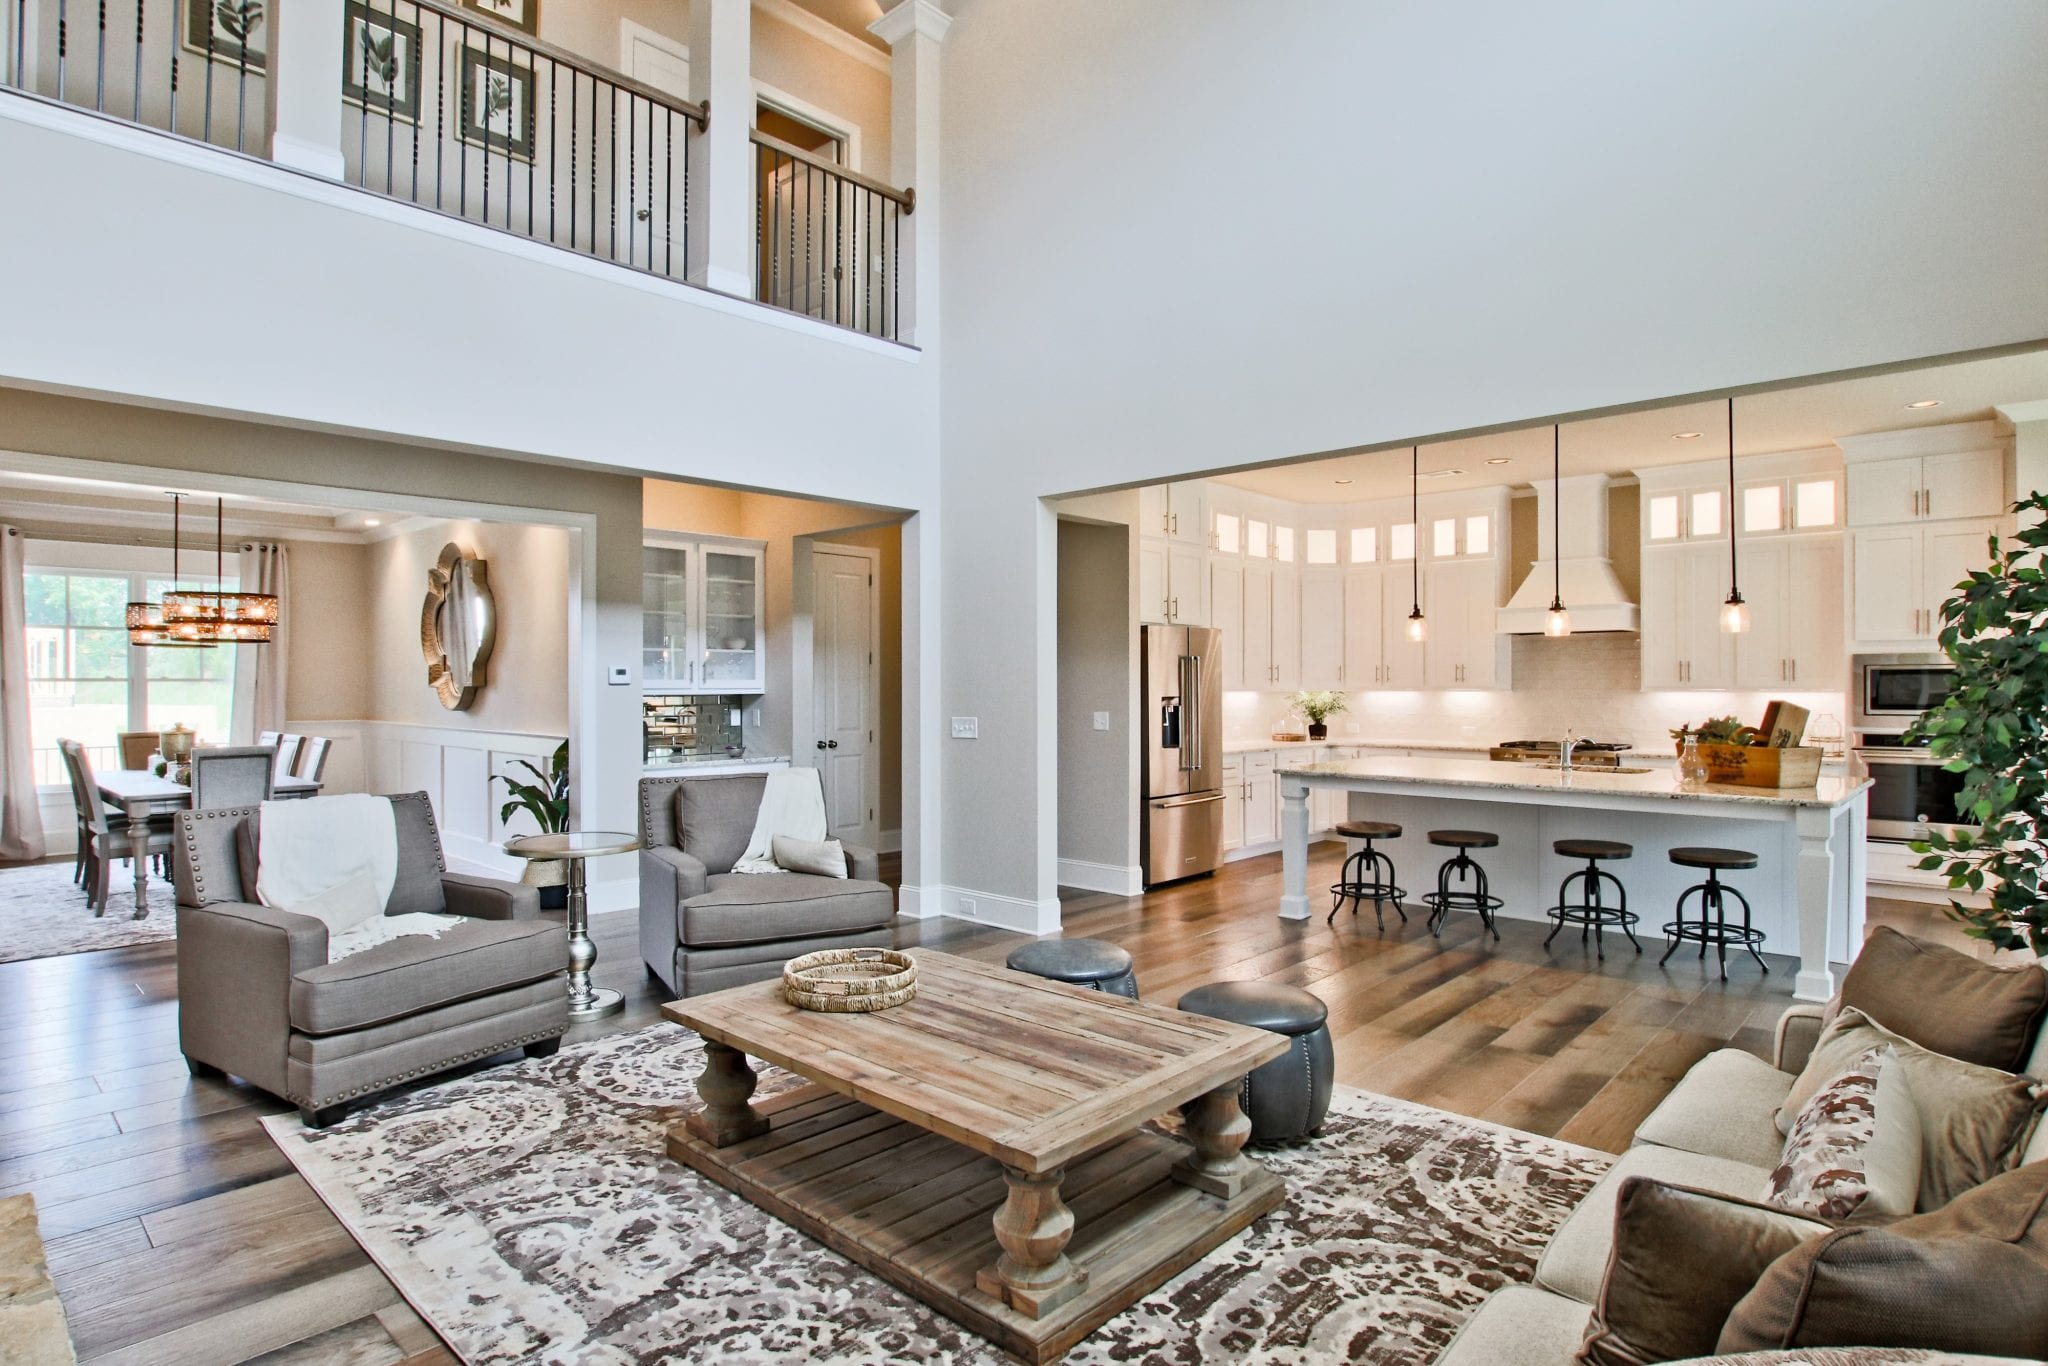 Great Rooms 2 Story High Or Just Raised With A Loft Or